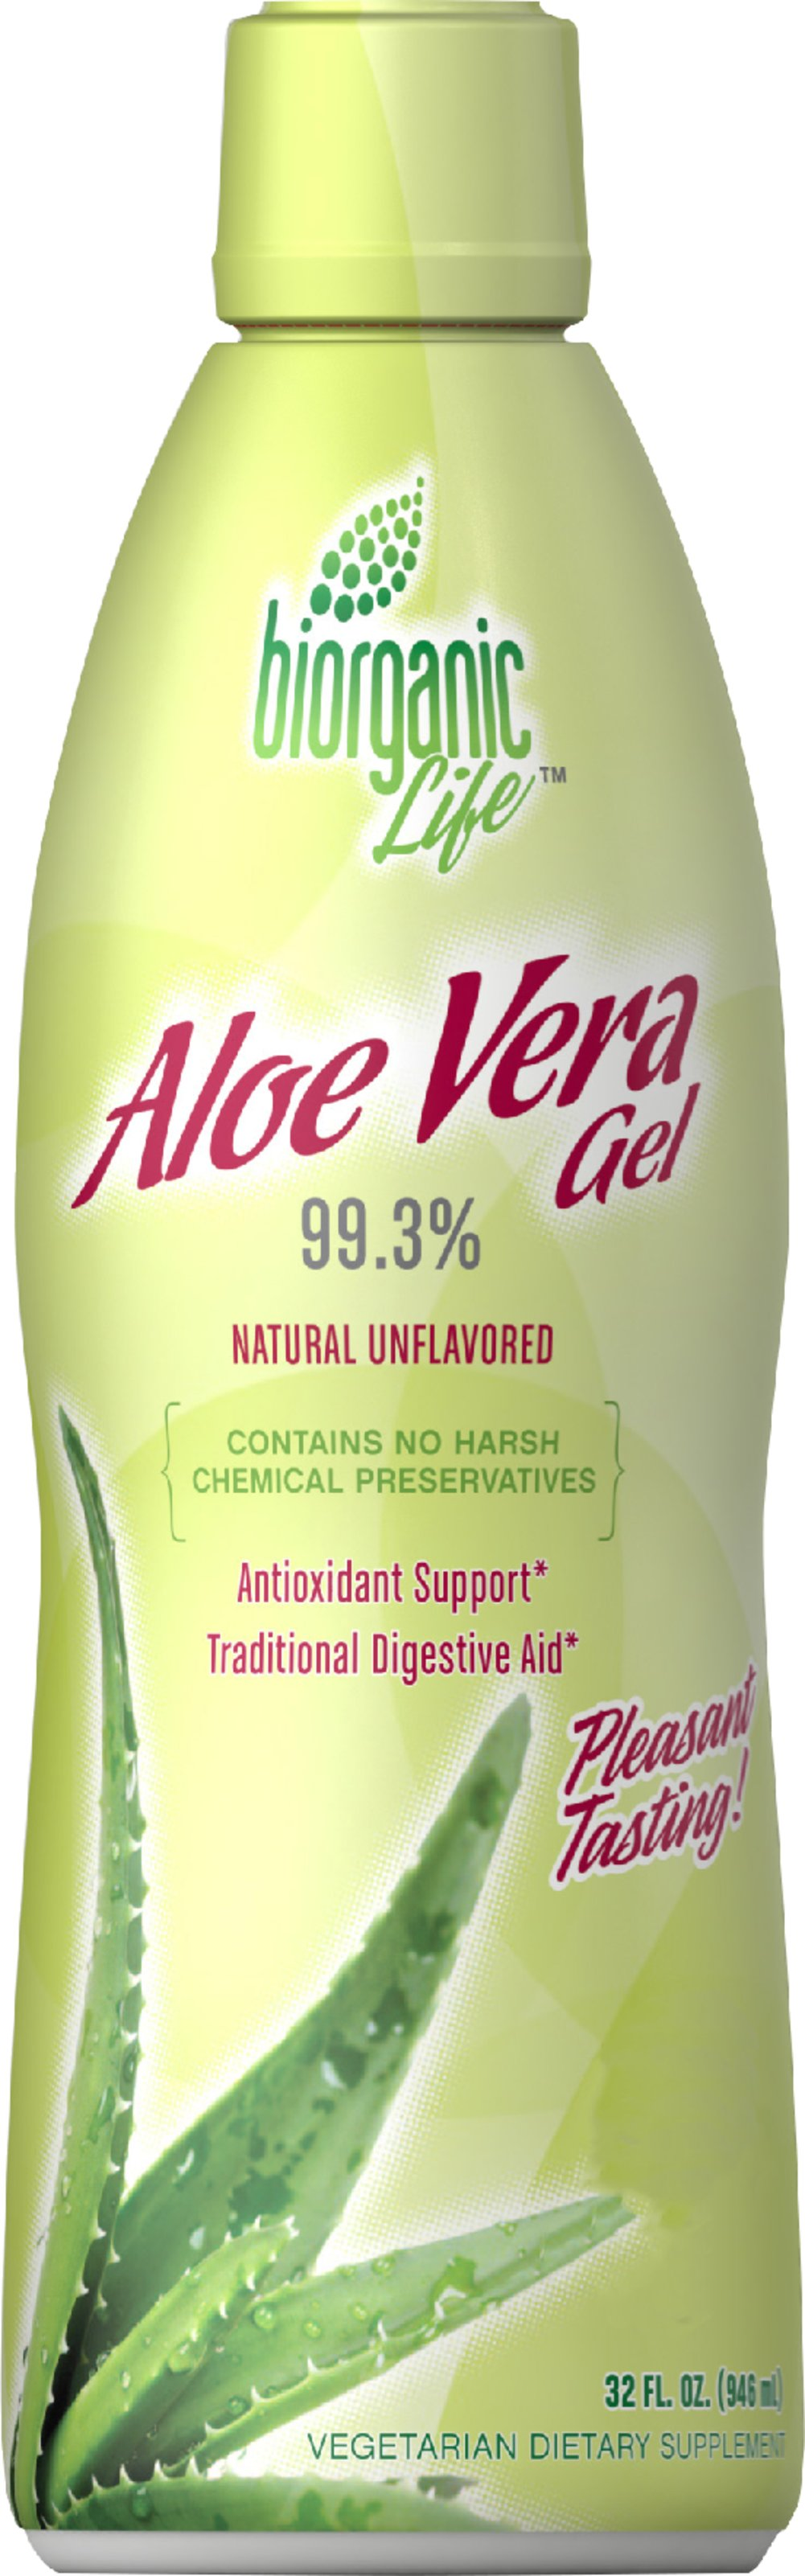 Aloe Vera Gel Drink 99.3% <p>Contributes to well-being**</p><p>Includes important vitamins, minerals and other important nutrients</p><p>Liquid formulas mix readily into your favorite drinks for easy consumption</p><p>Helps promote healthy digestive function**</p><p>Aloe Vera contains a host of nutrients, including vitamins, minerals, amino acids, polysaccharides and phenolic compounds to promote overall well-being.**</p> 32 fl oz Bottl